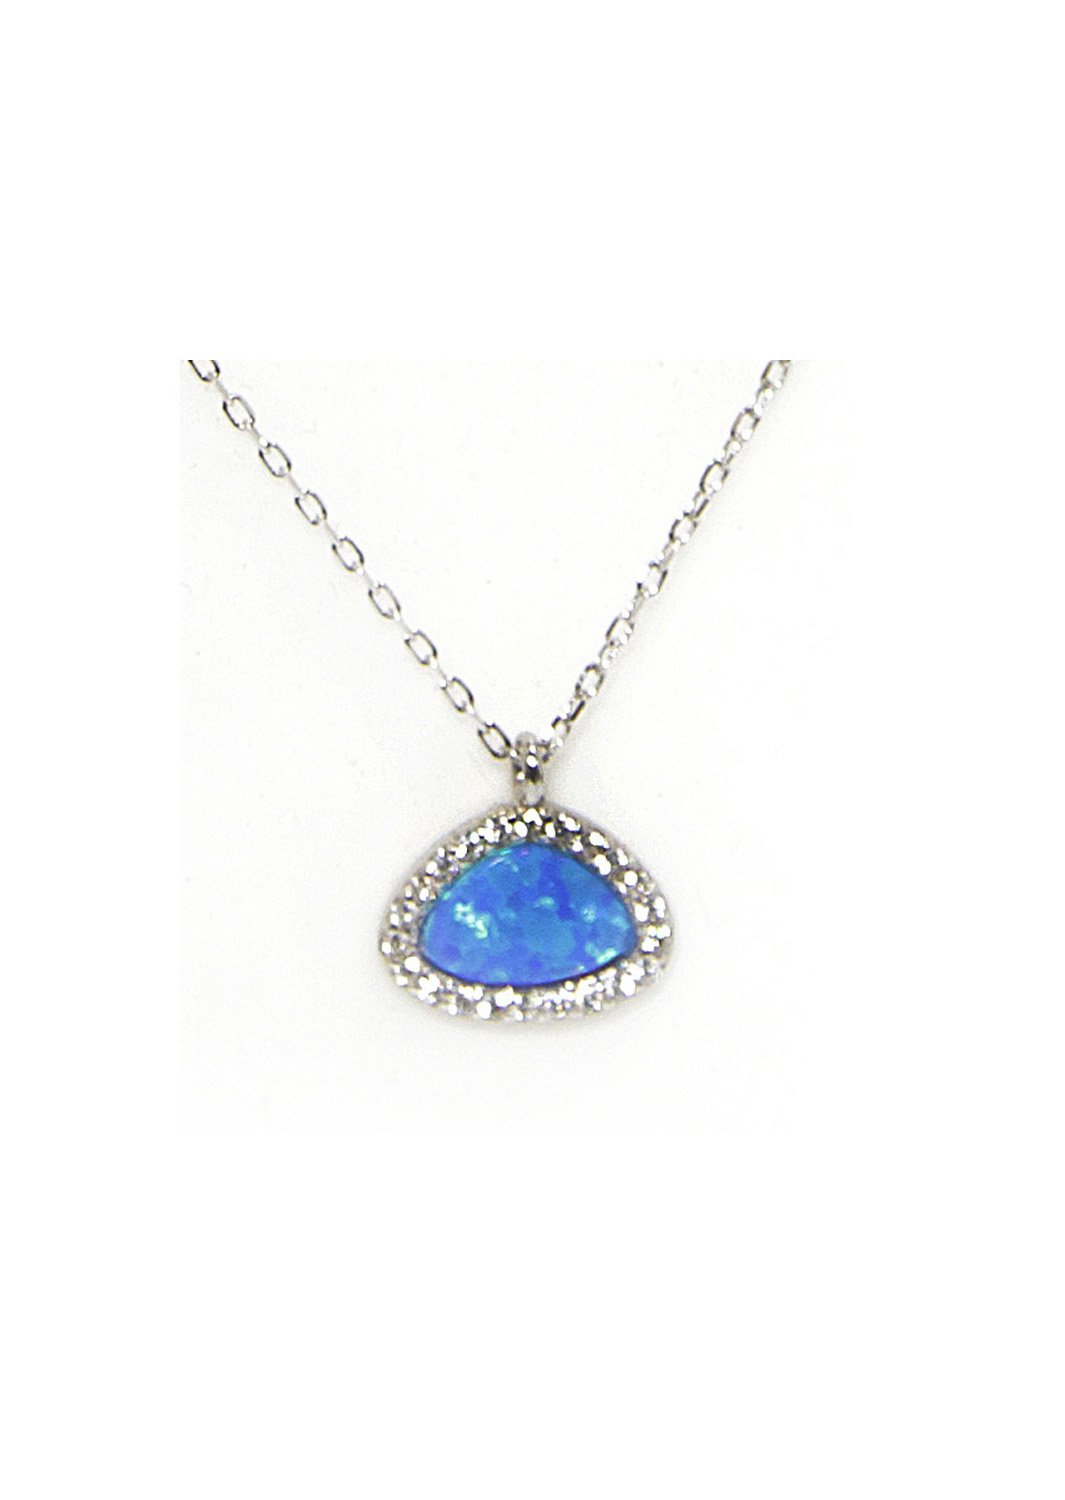 Blue opal pendant silver necklace with zircon